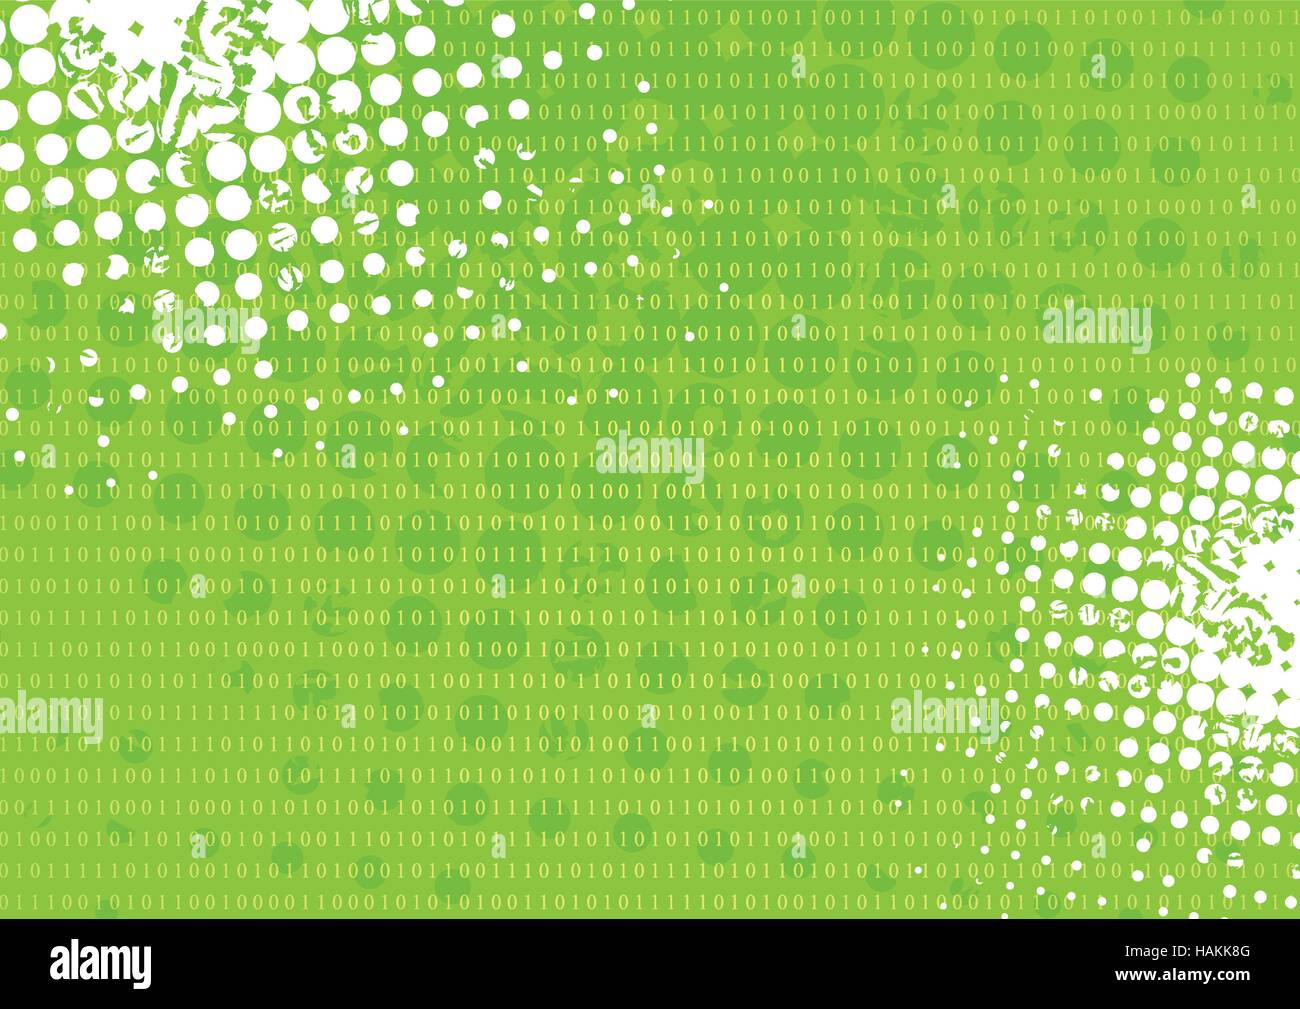 Tech grunge green binary system background. Vector technology design - Stock Image